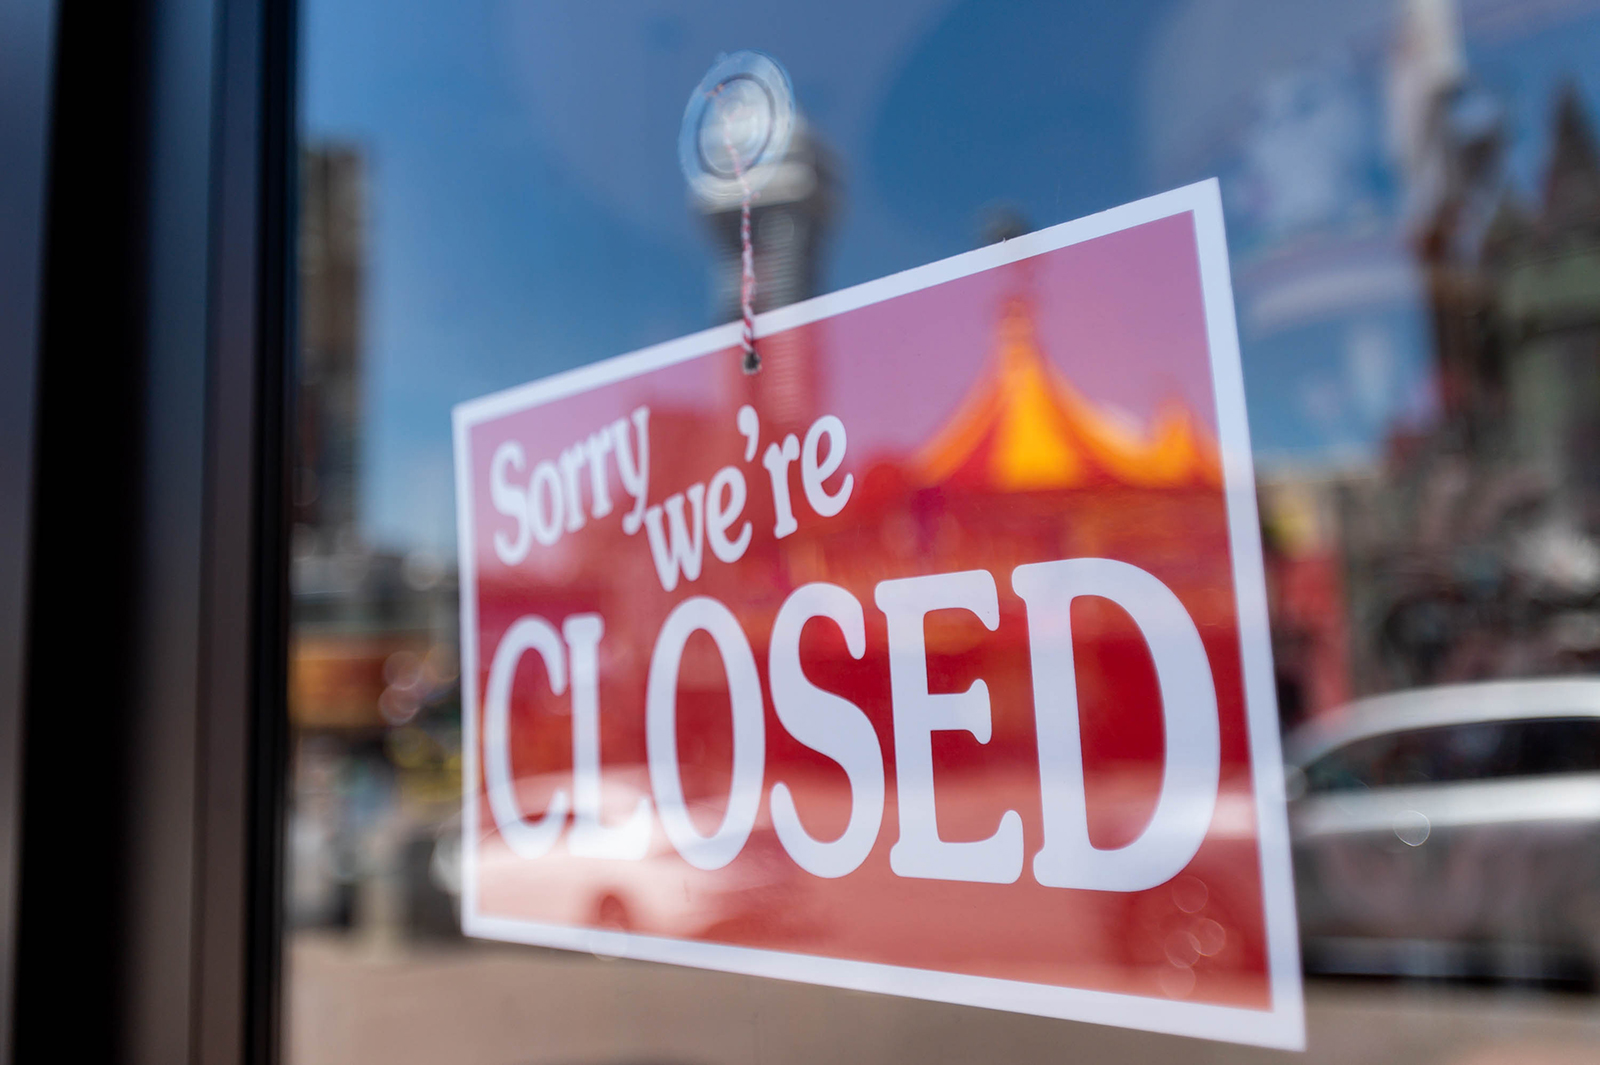 A closed sign in the town of Niagara Falls is seen on April 27 in Niagara Falls, Canada. Tourist attractions across Canada have been hit hard by the Covid-19 pandemic.